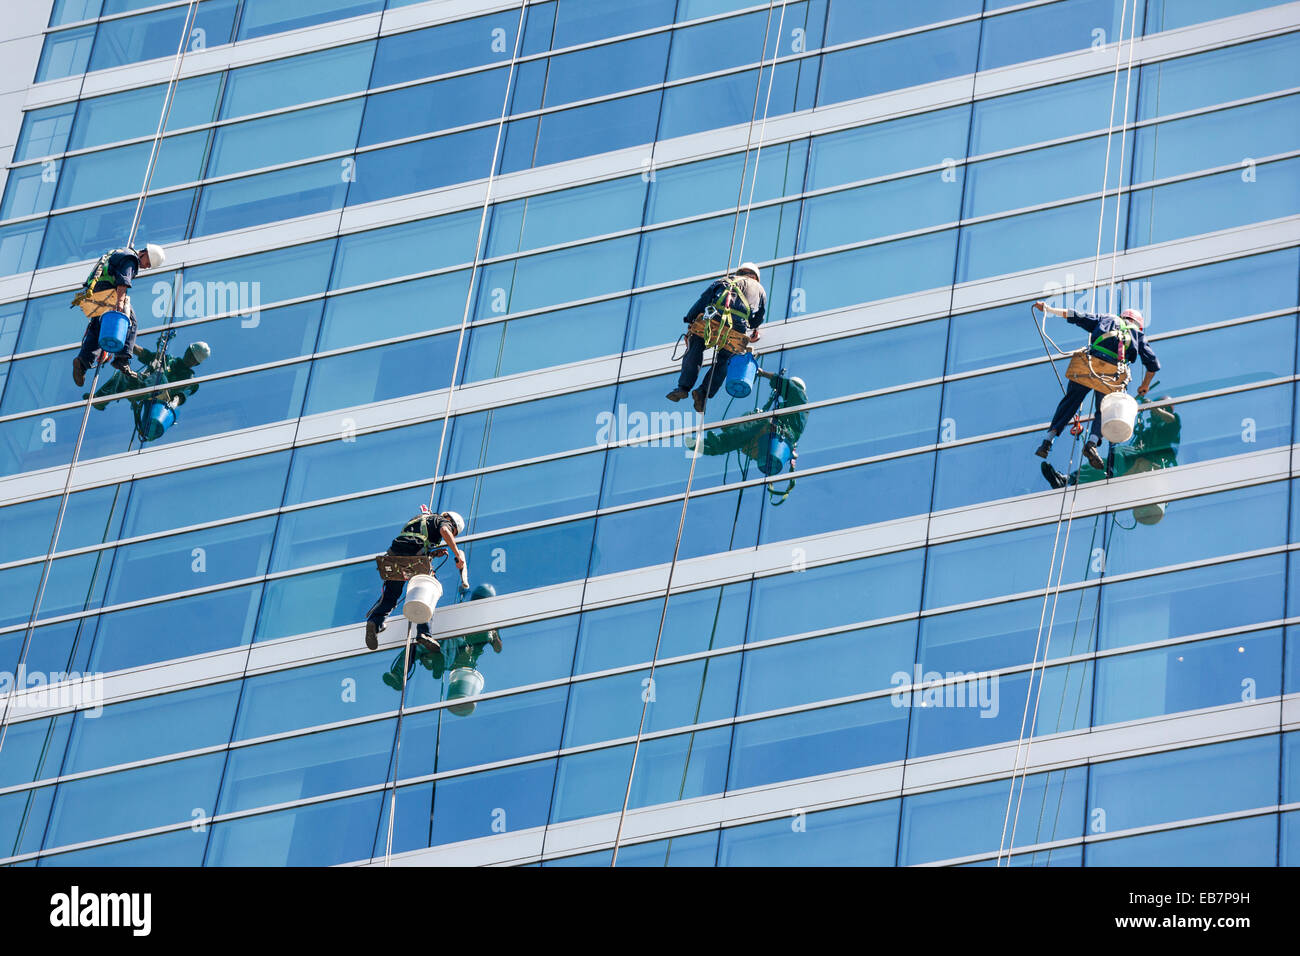 Window cleaners cleaning windows of modern office tower high rise building skyscraper using RDS ropes and bosun's - Stock Image